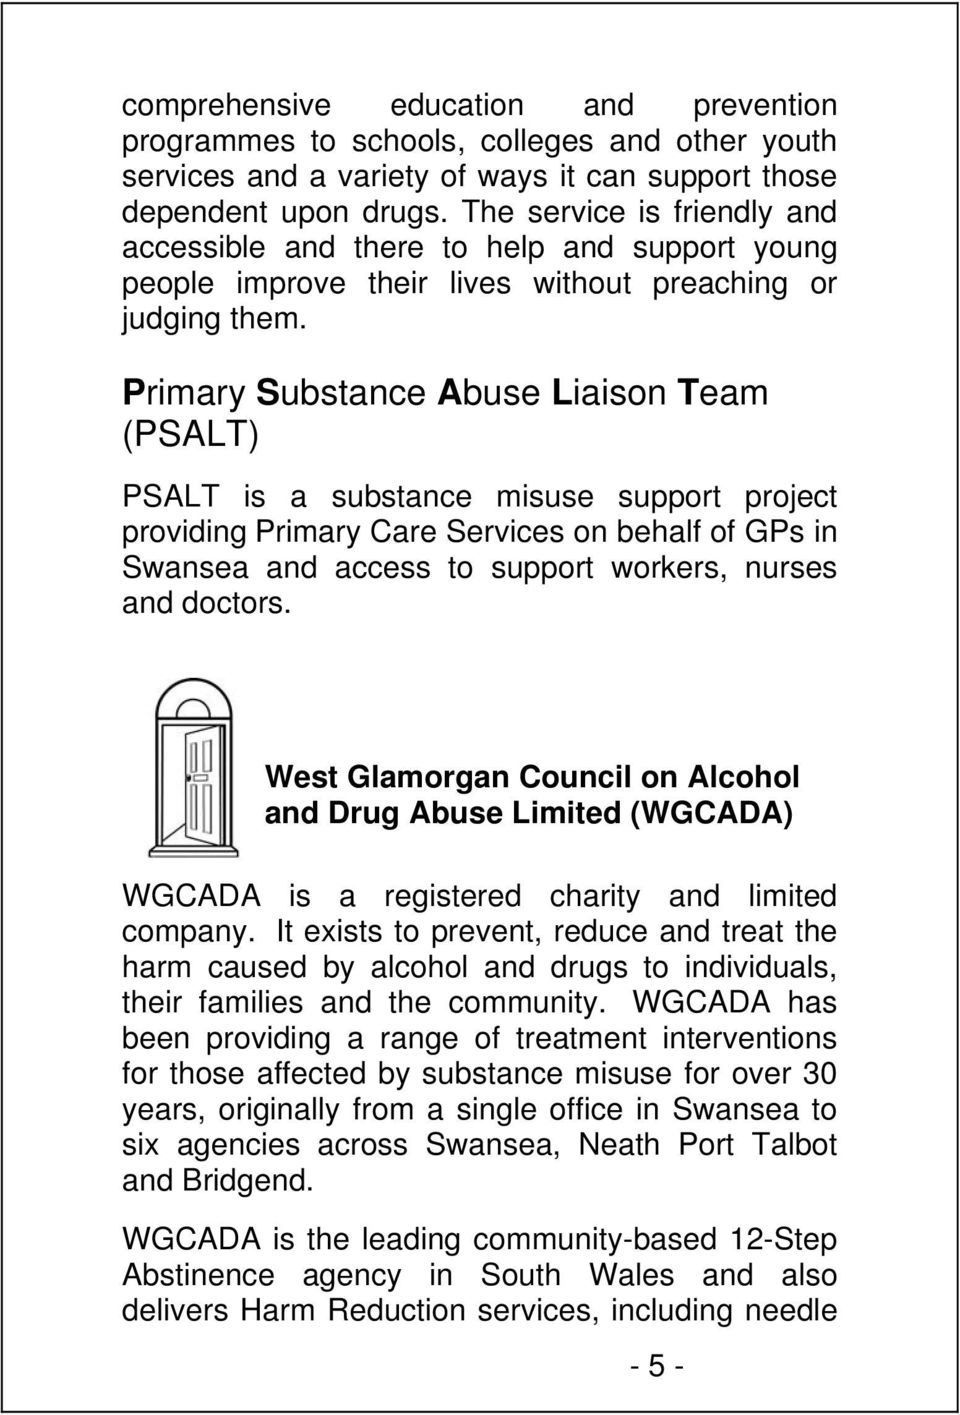 Primary Substance Abuse Liaison Team (PSALT) PSALT is a substance misuse support project providing Primary Care Services on behalf of GPs in Swansea and access to support workers, nurses and doctors.